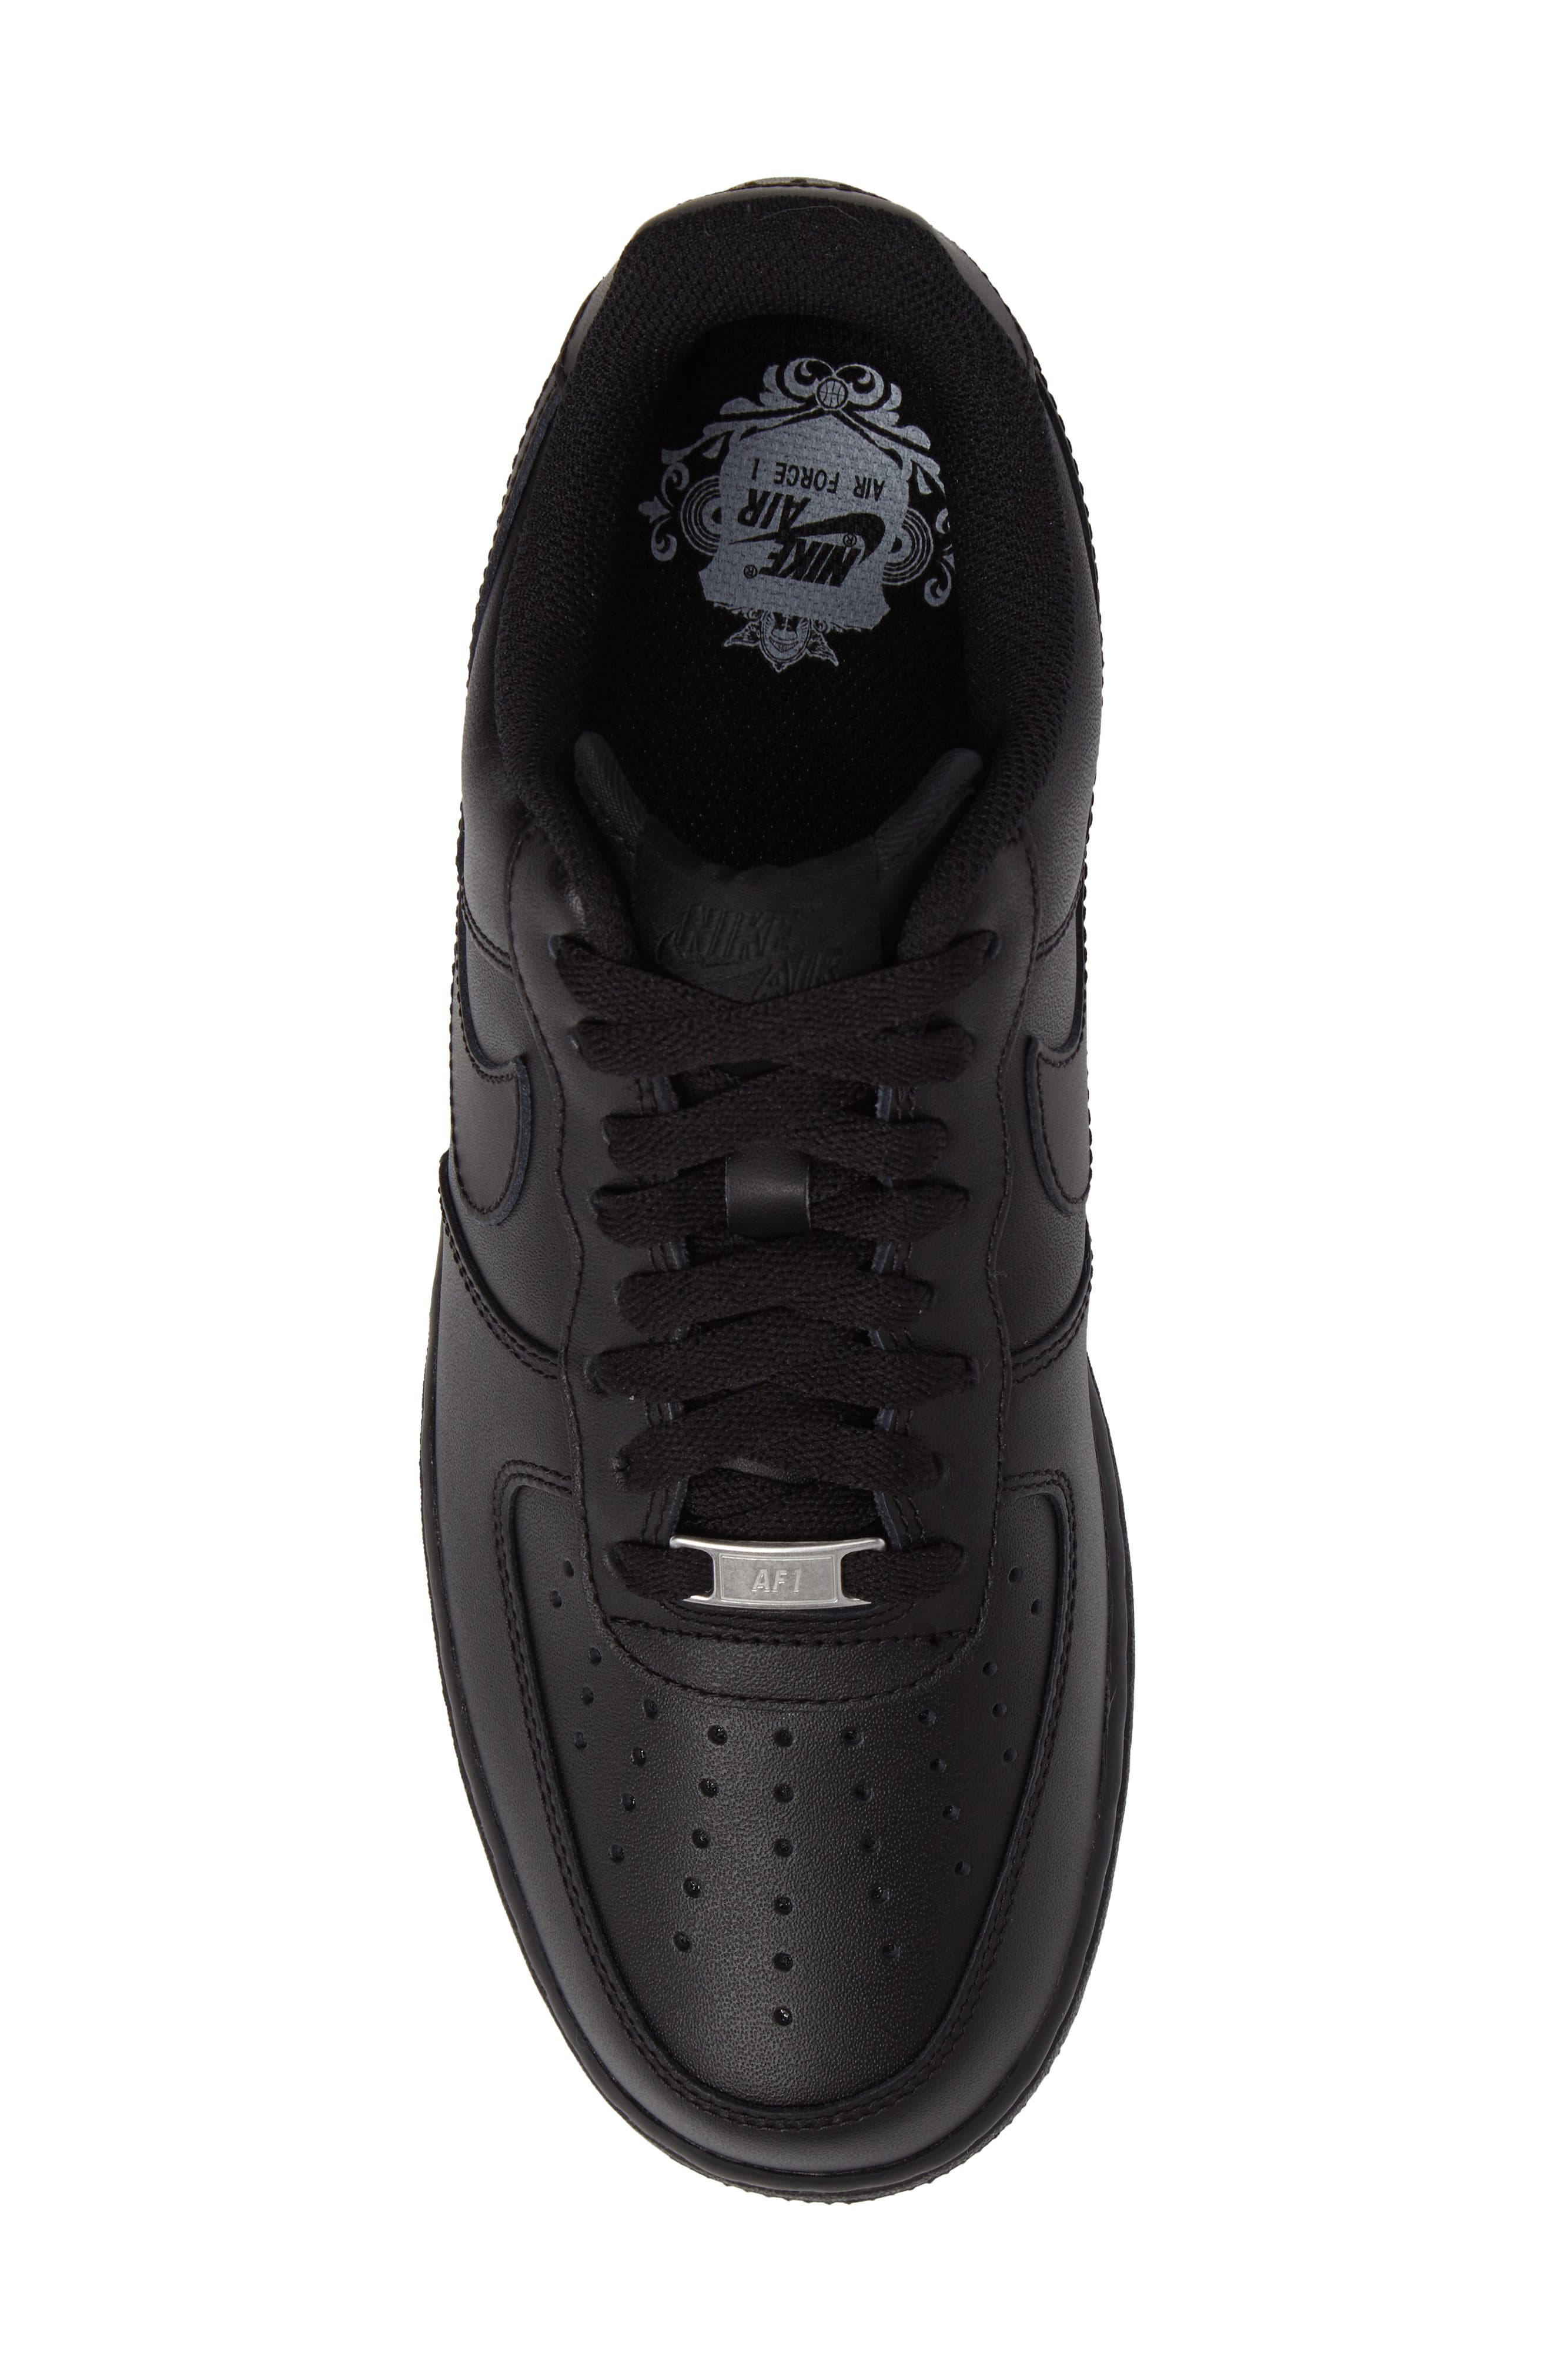 Air Force 1 '07 Sneaker,                             Alternate thumbnail 5, color,                             Black/ Black